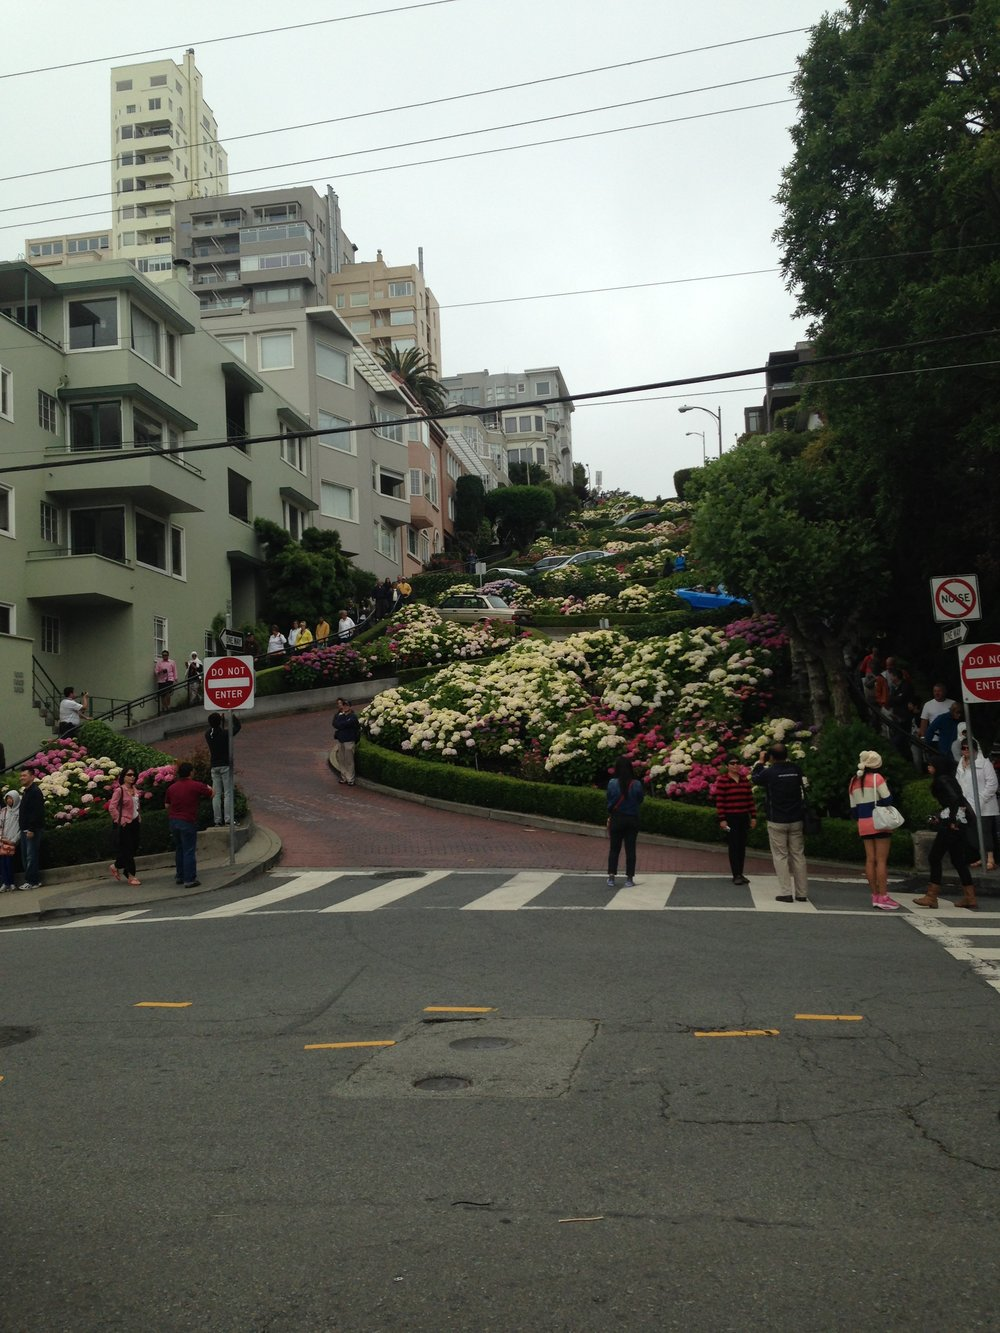 san_francisco_windy_city_what_to_do_what's_on_lombard_street_elle_blonde_luxury_lifestyle_blog